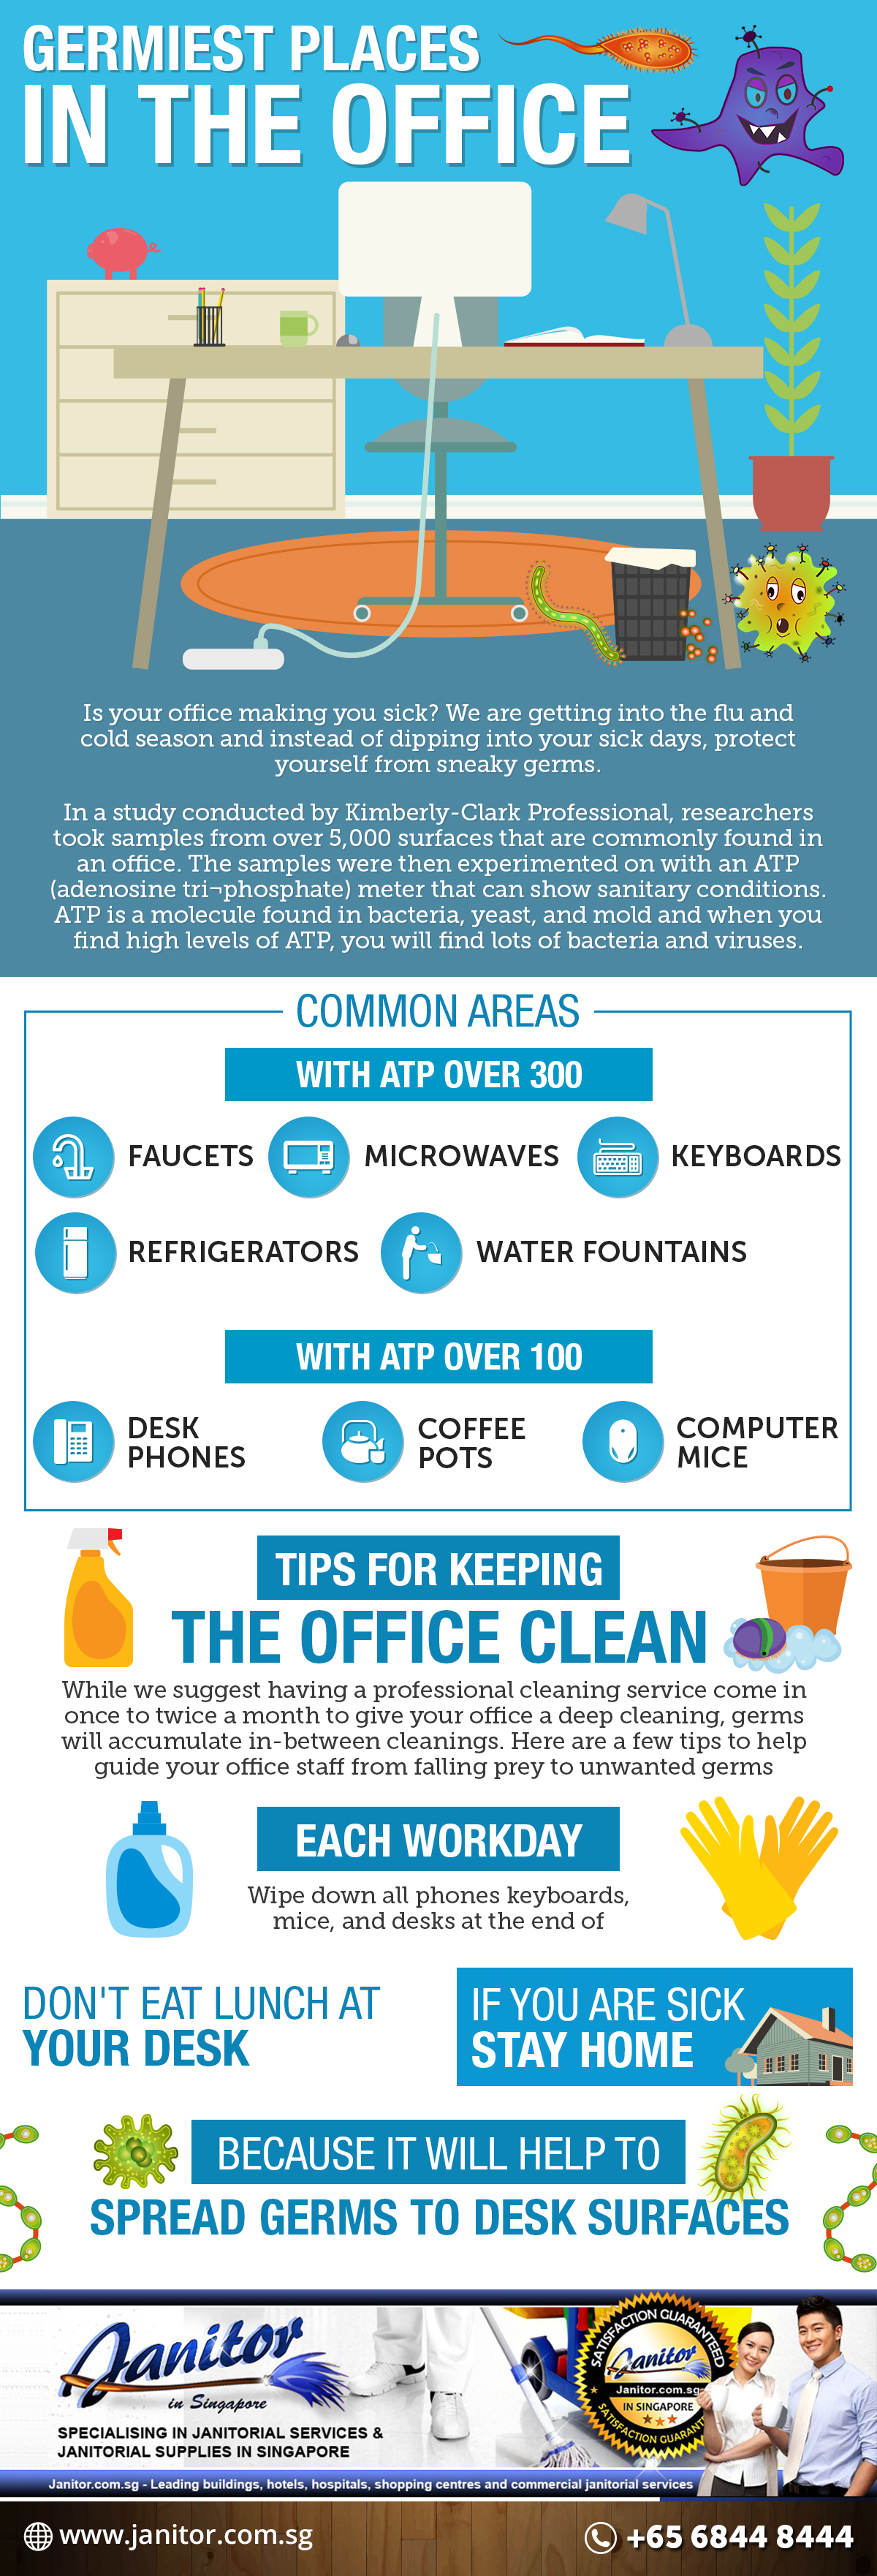 Infographic on dirty places in office with most germs